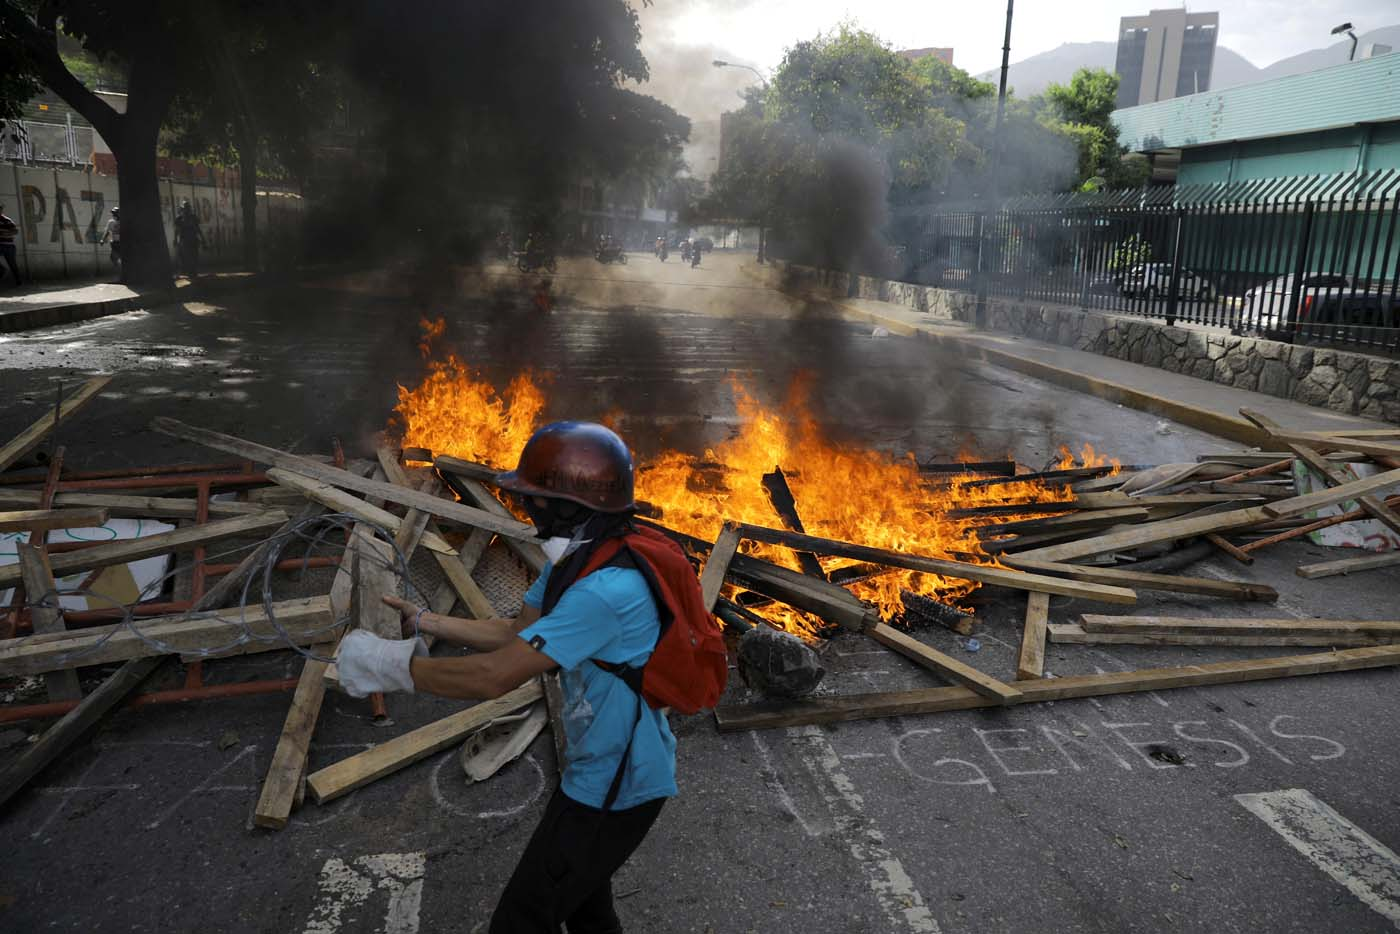 A demonstrator walks in front of a fire barricade while clashing with riot security forces during a rally against President Nicolas Maduro in Caracas, Venezuela, May 24, 2017. REUTERS/Carlos Barria